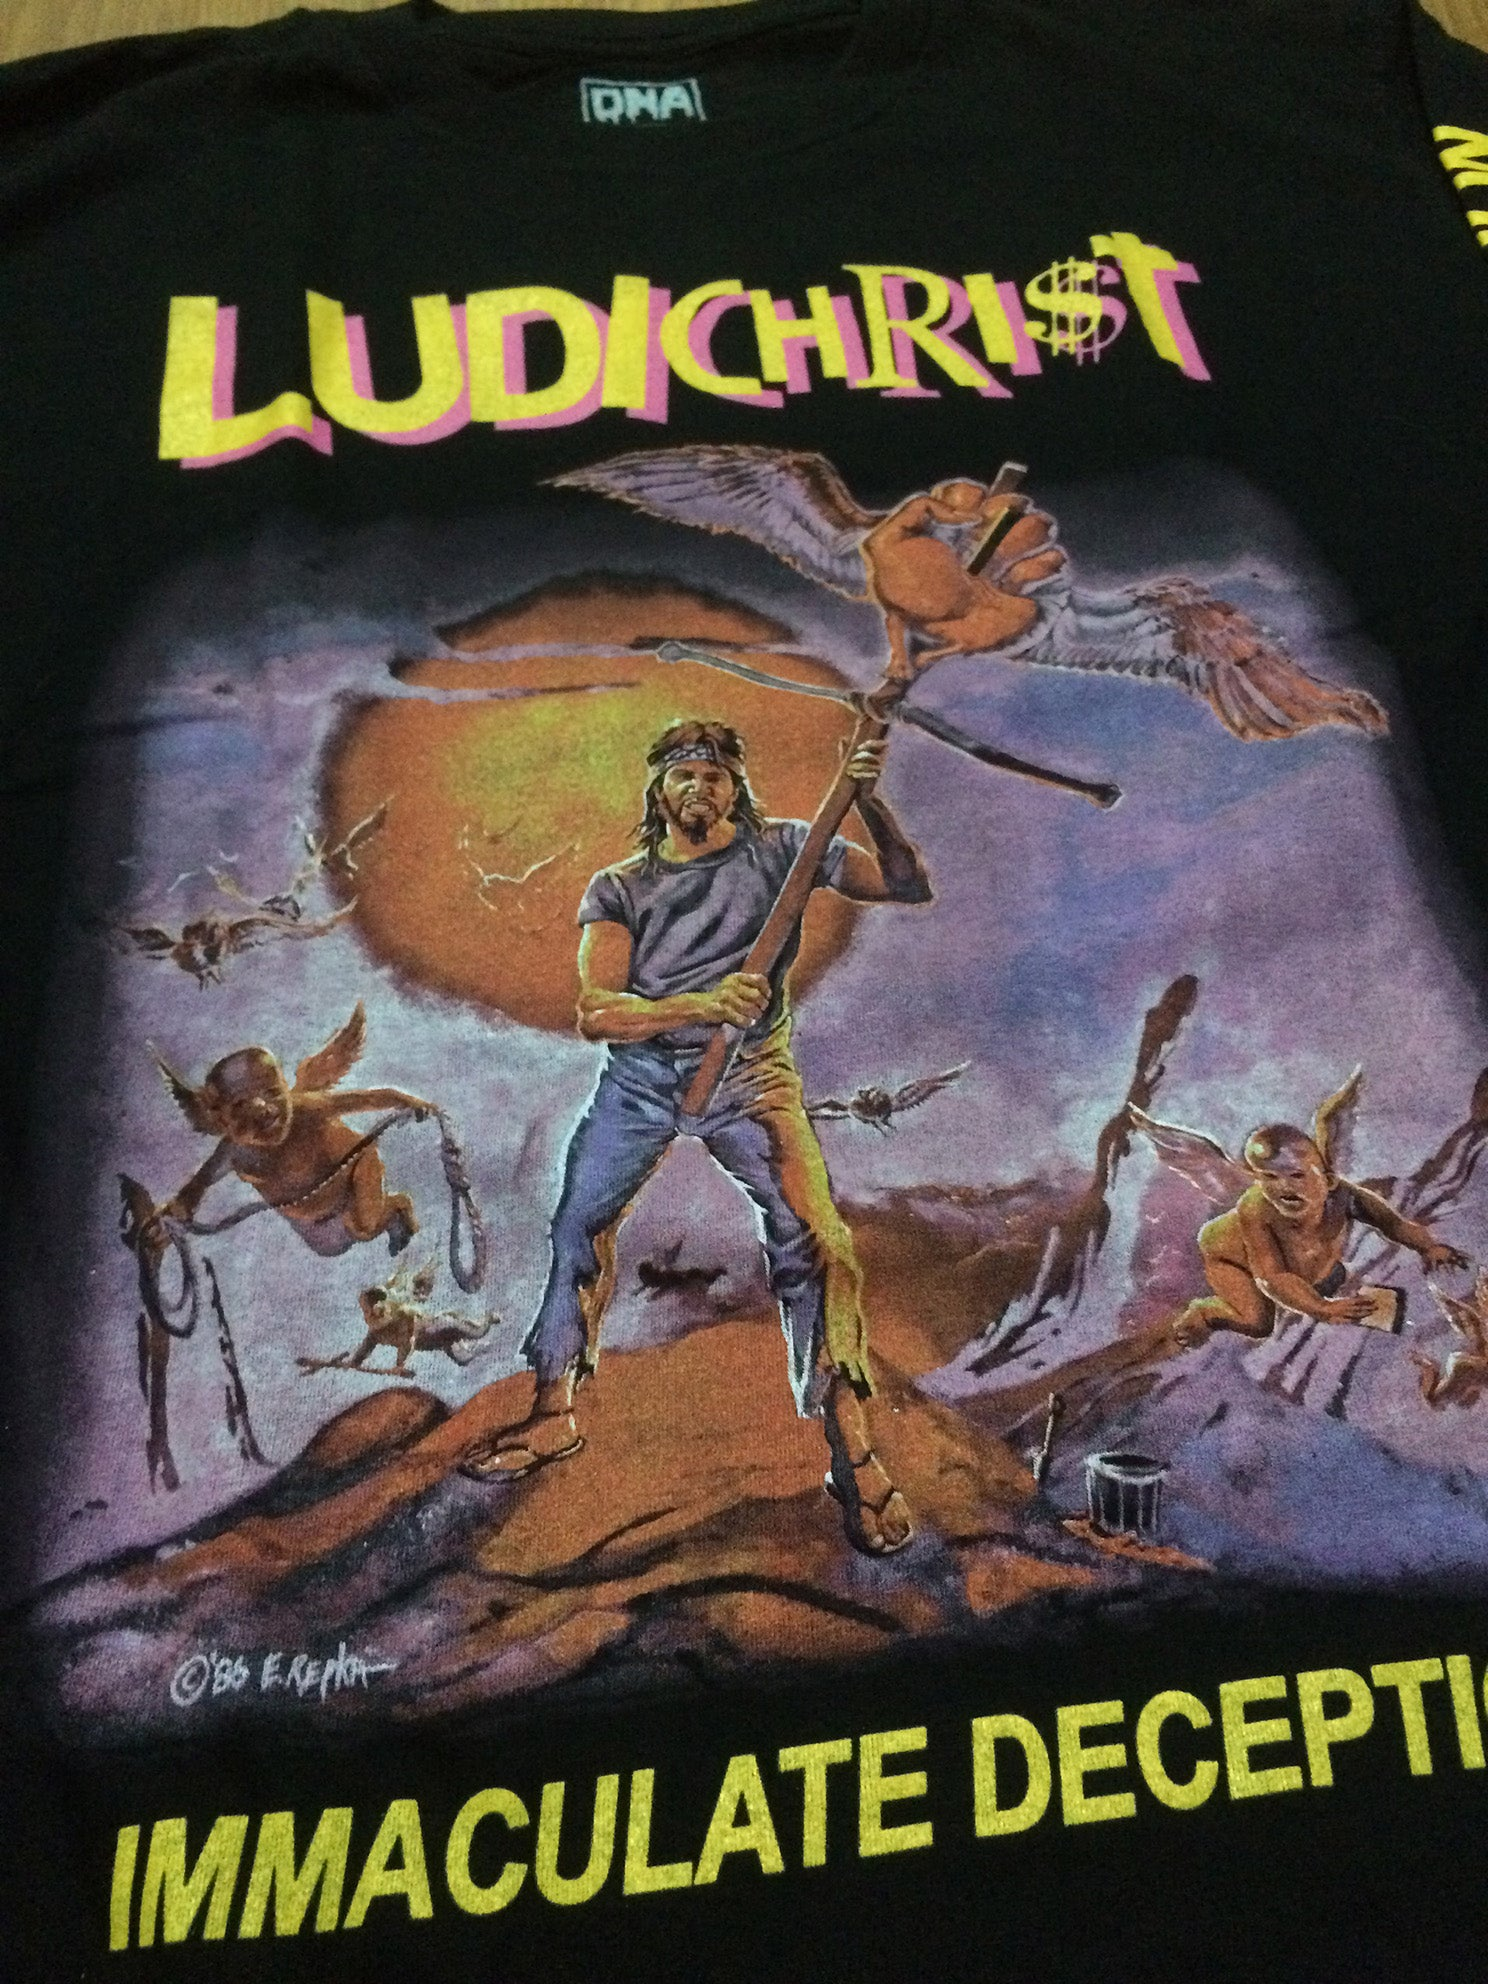 Image of Ludichrist - Immaculate Deception